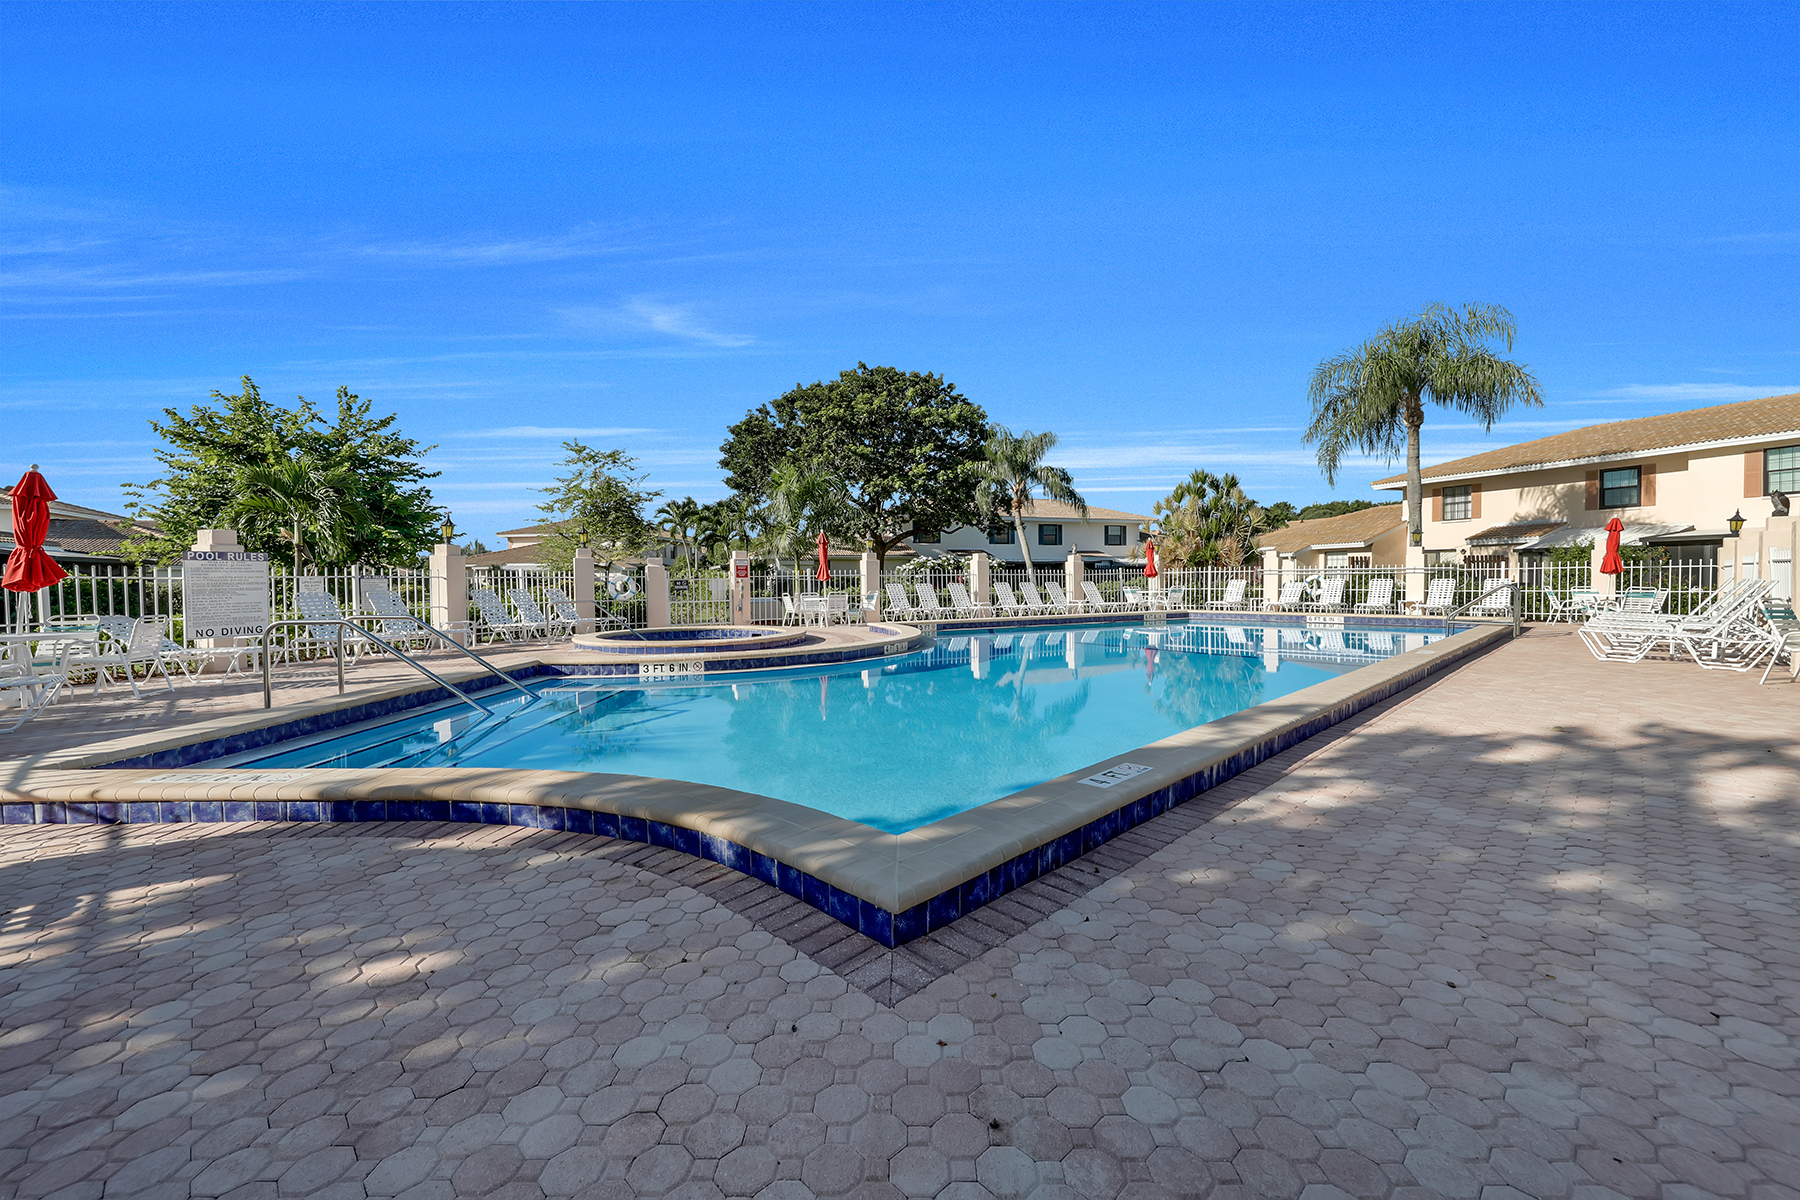 Condominium for Sale at MARCO ISLAND 45 Marco Villas Dr K-6, Marco Island, Florida 34145 United States